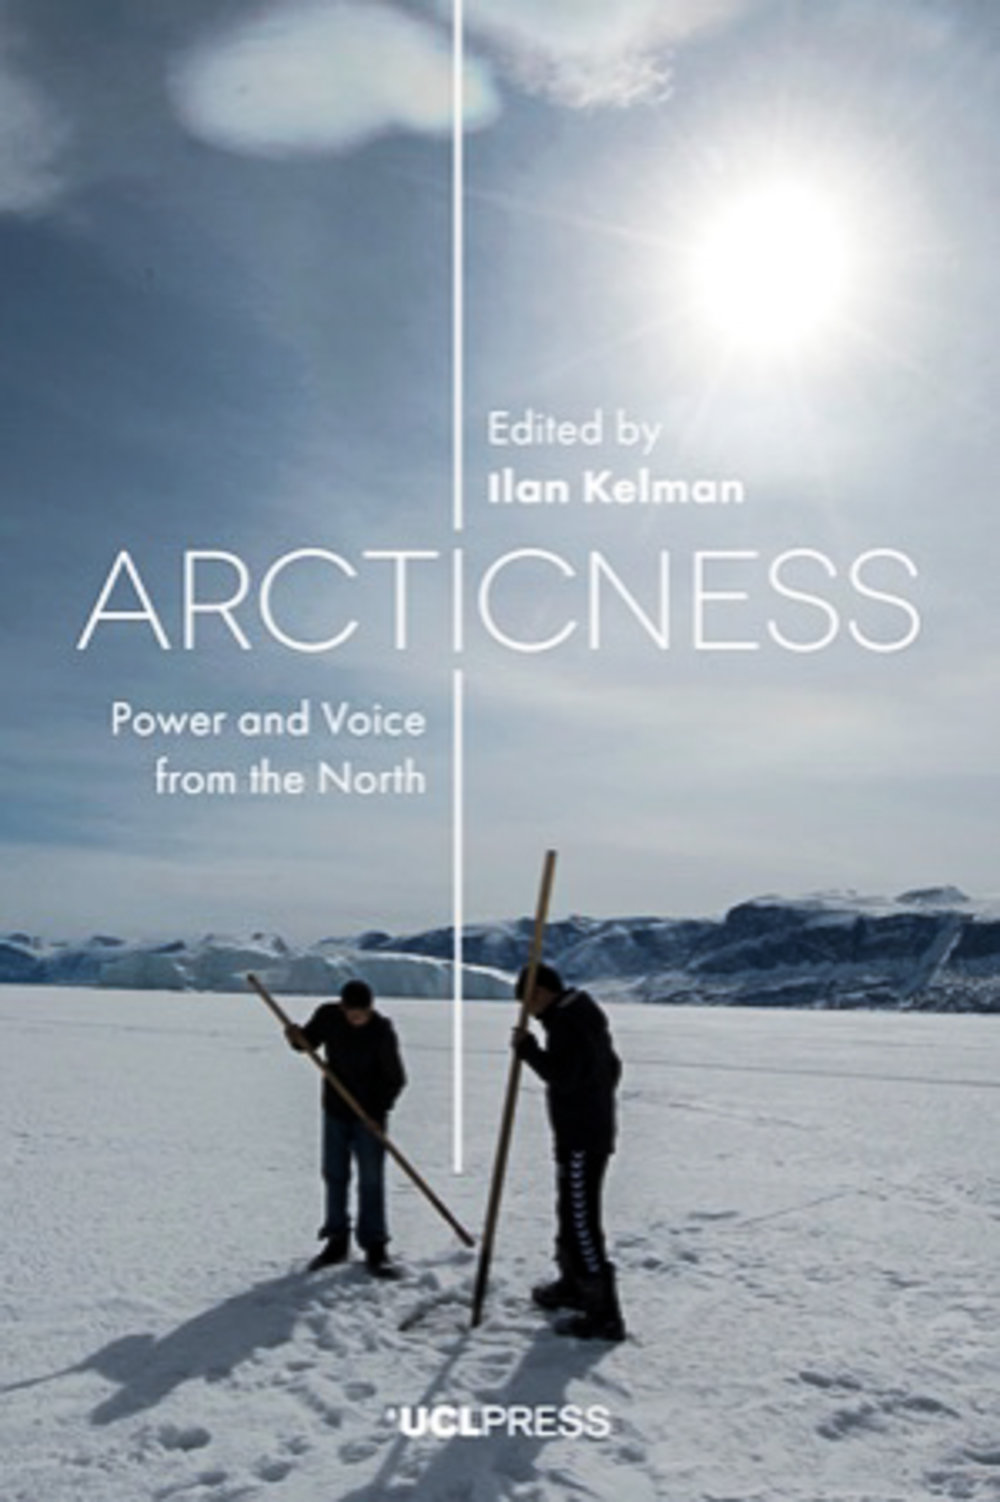 Click on cover to download a free pdf copy of the book Arcticness - Power and Voice from the North.